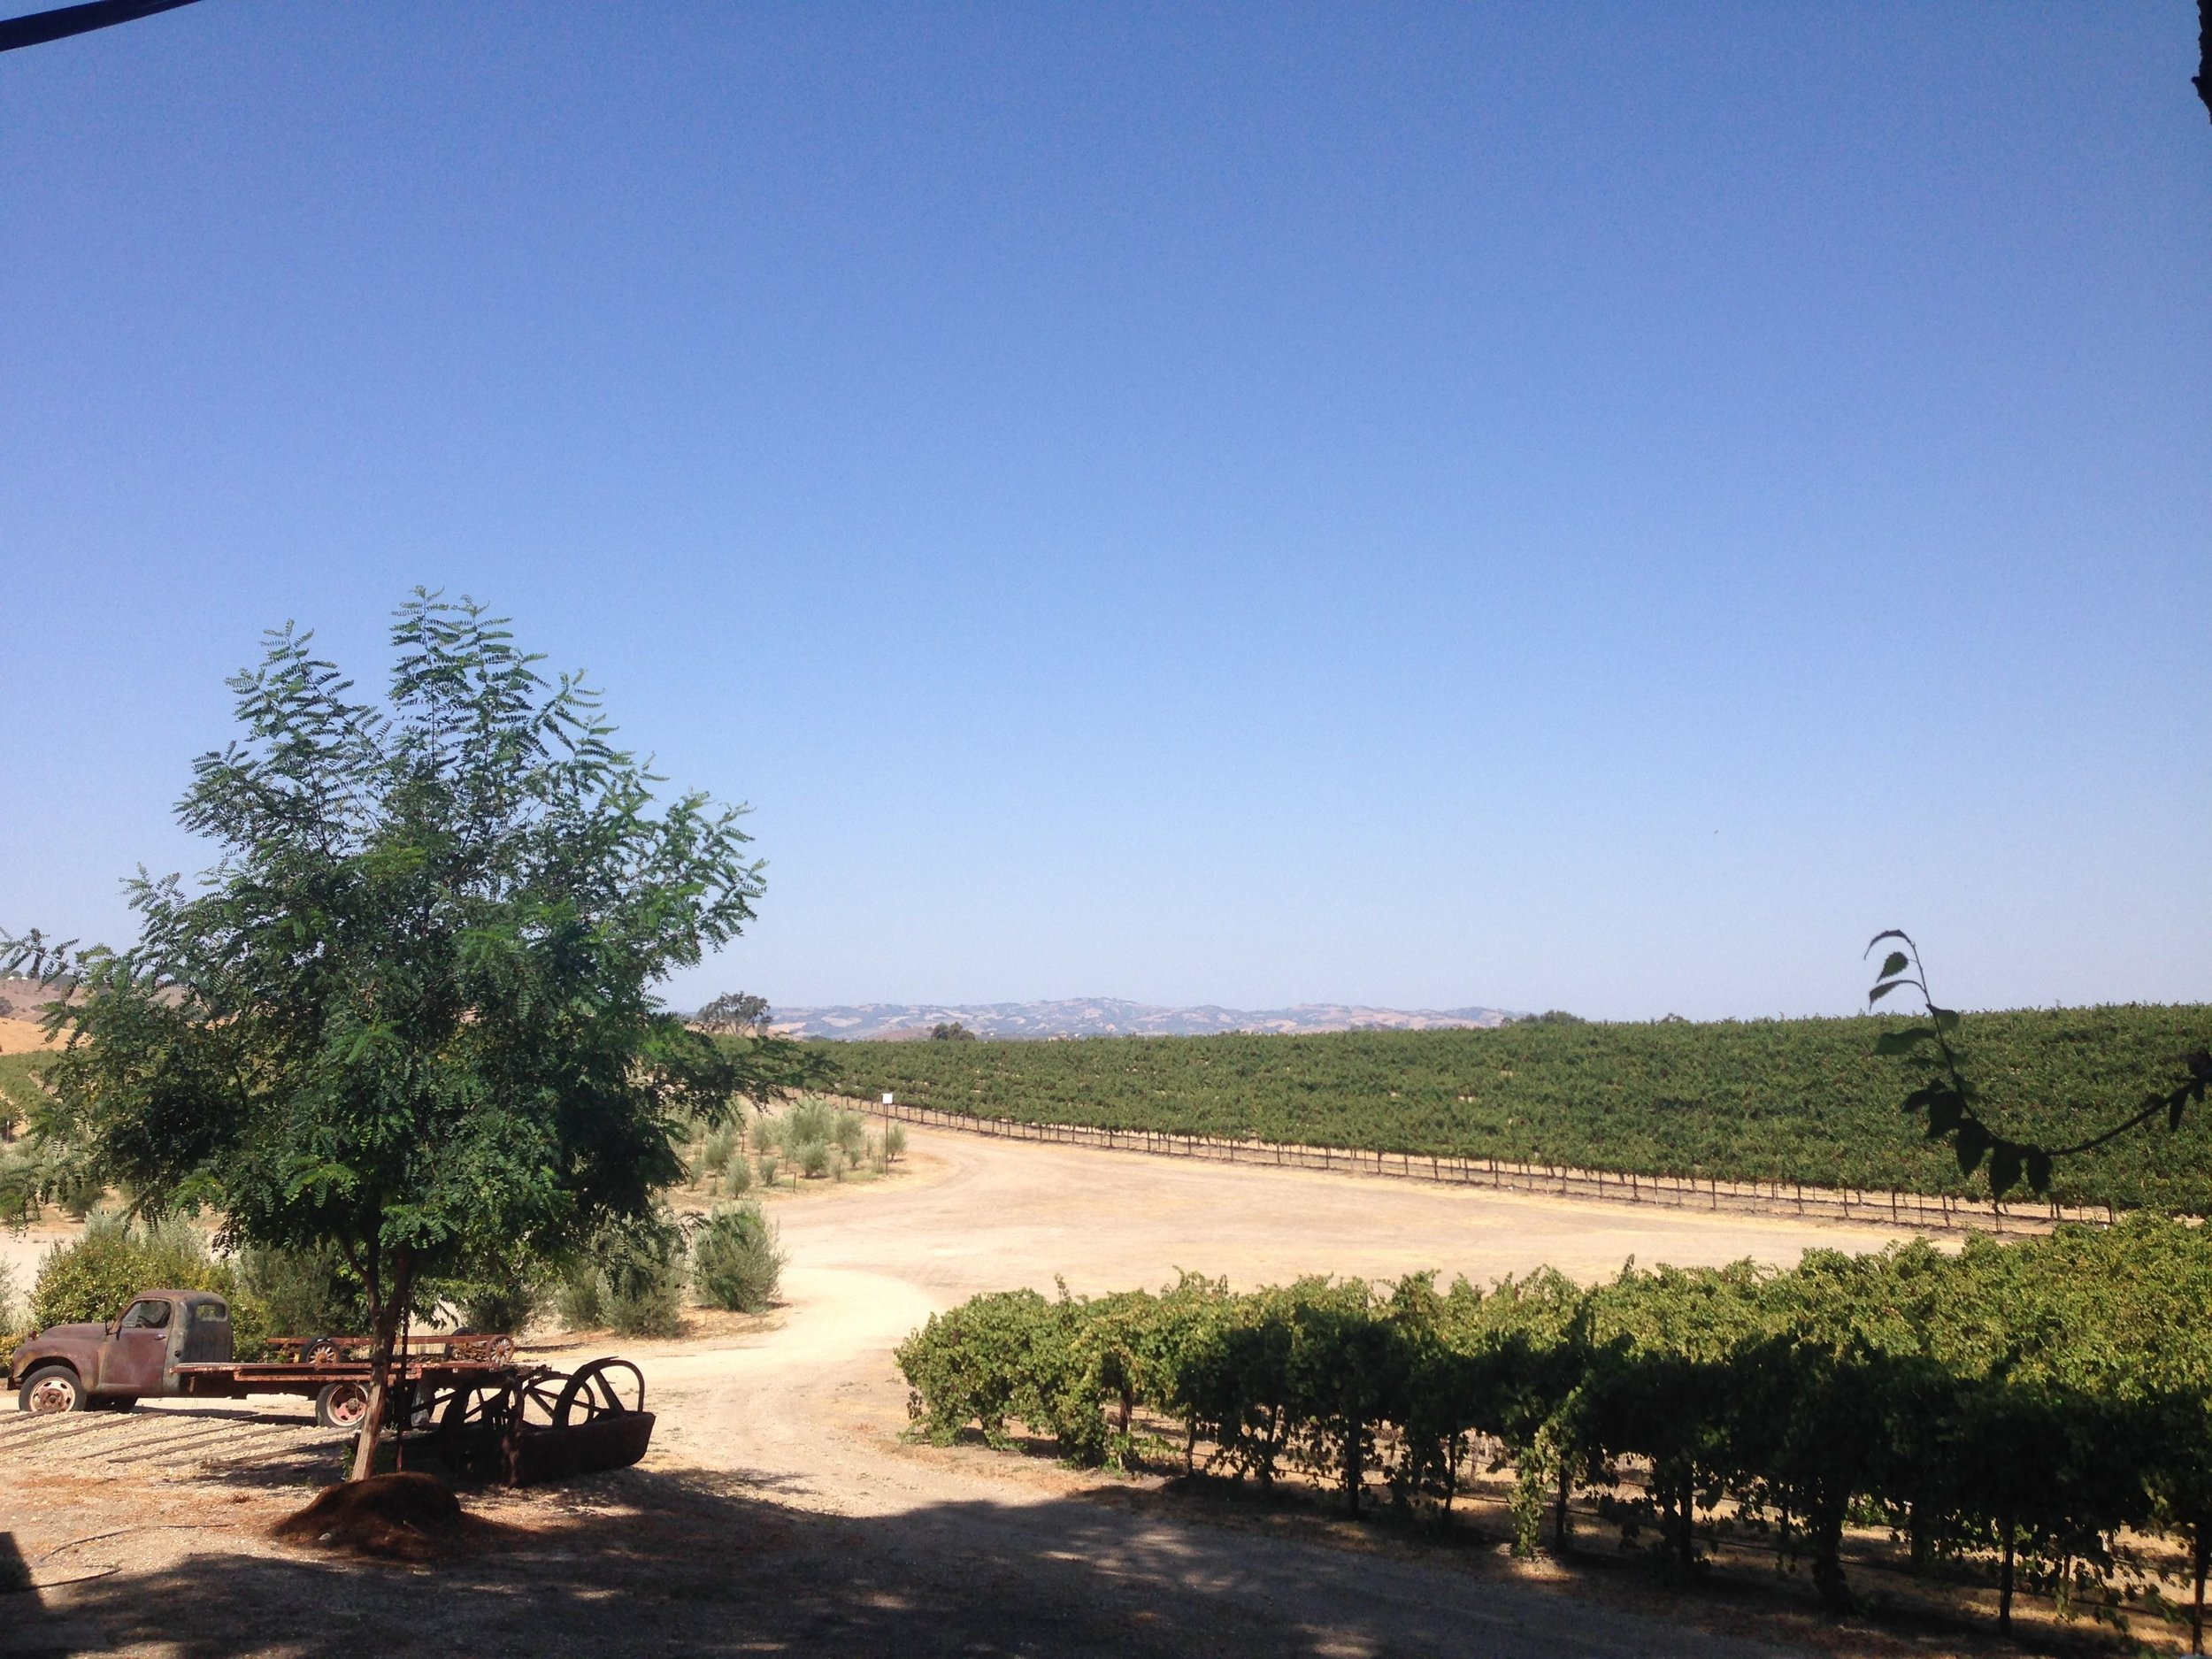 Paso-Robles-Pomar-Junction.jpg